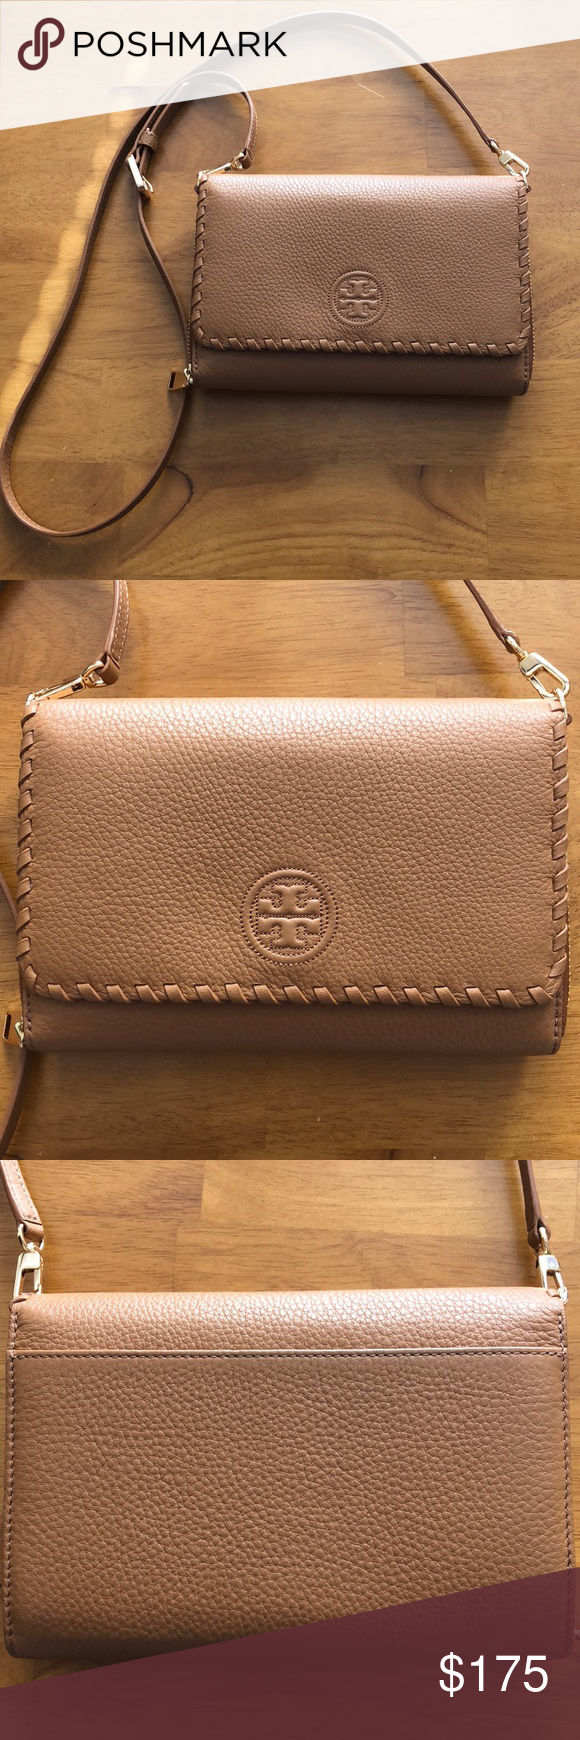 "d199a8b695c9 Tory Burch Marion Flat Wallet Crossbody ""Bark"" colored Tory Burch Bags  Crossbody Bags"